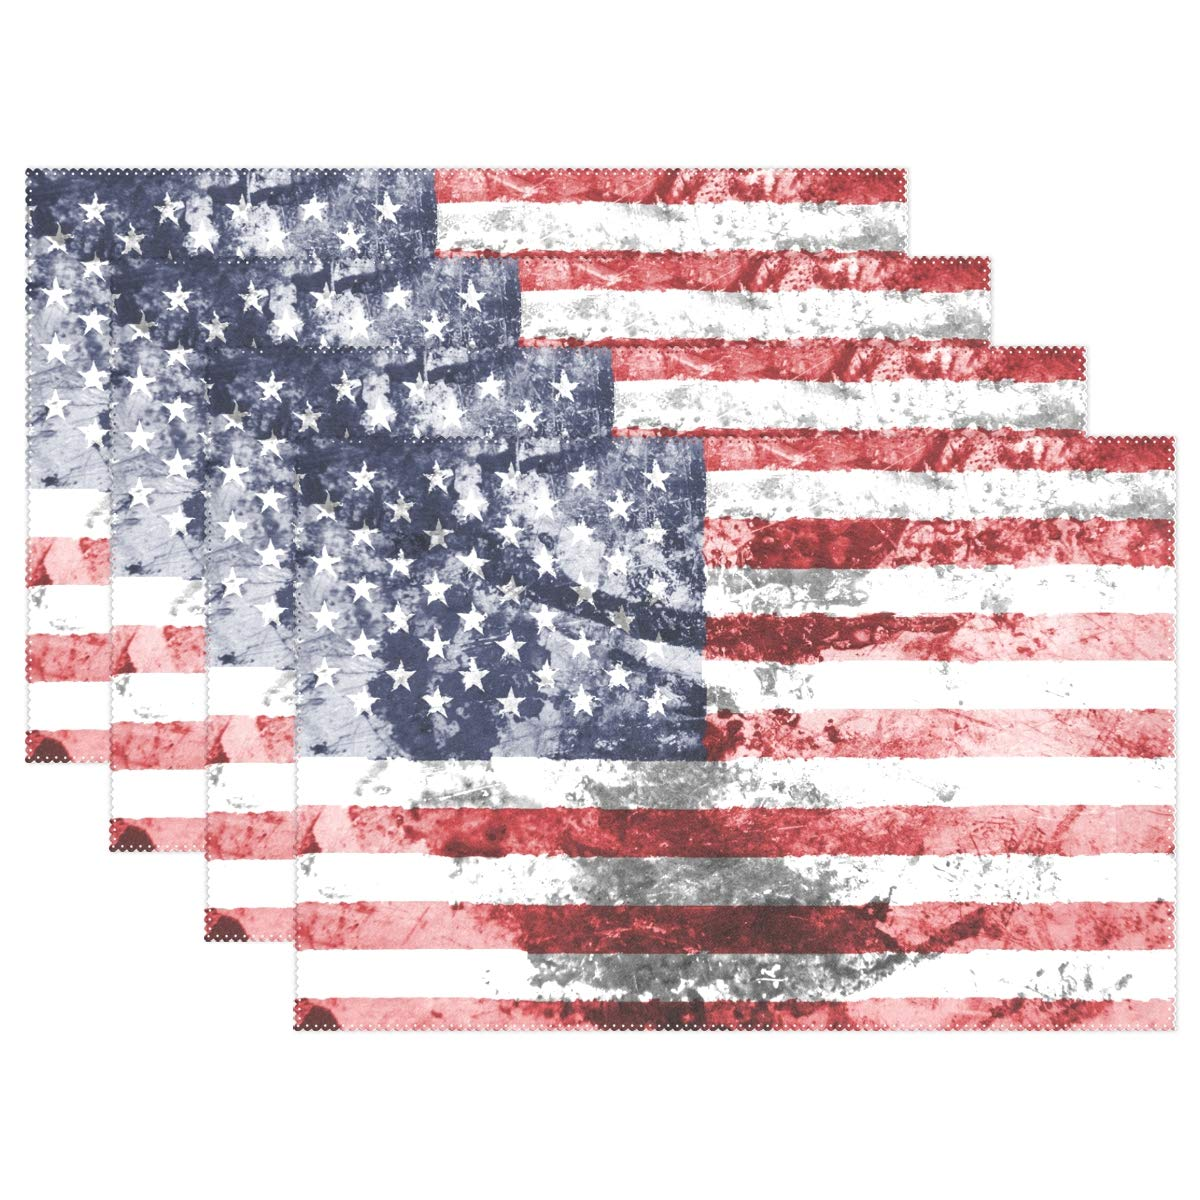 baihuishop America Flag Placemats Heat-Resistant Washable Table Mats 12 X 18 Inch Placemats for Family Kitchen Hotel Coffee Shop Dinning Restaurant Set of 4